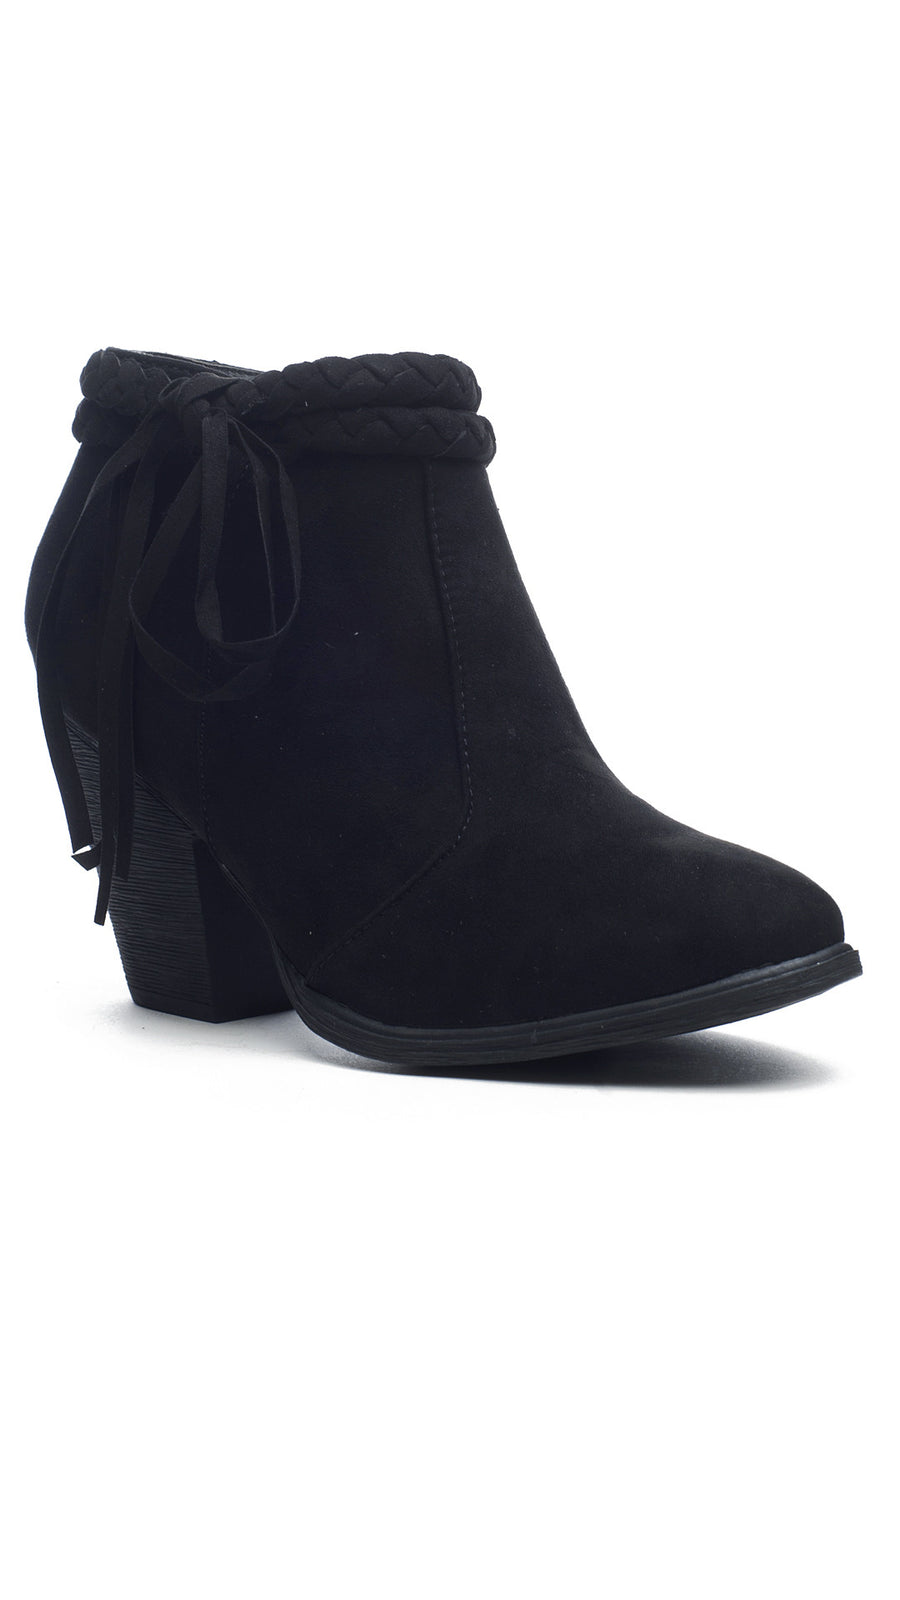 Fringe & Braided Bootie - Black